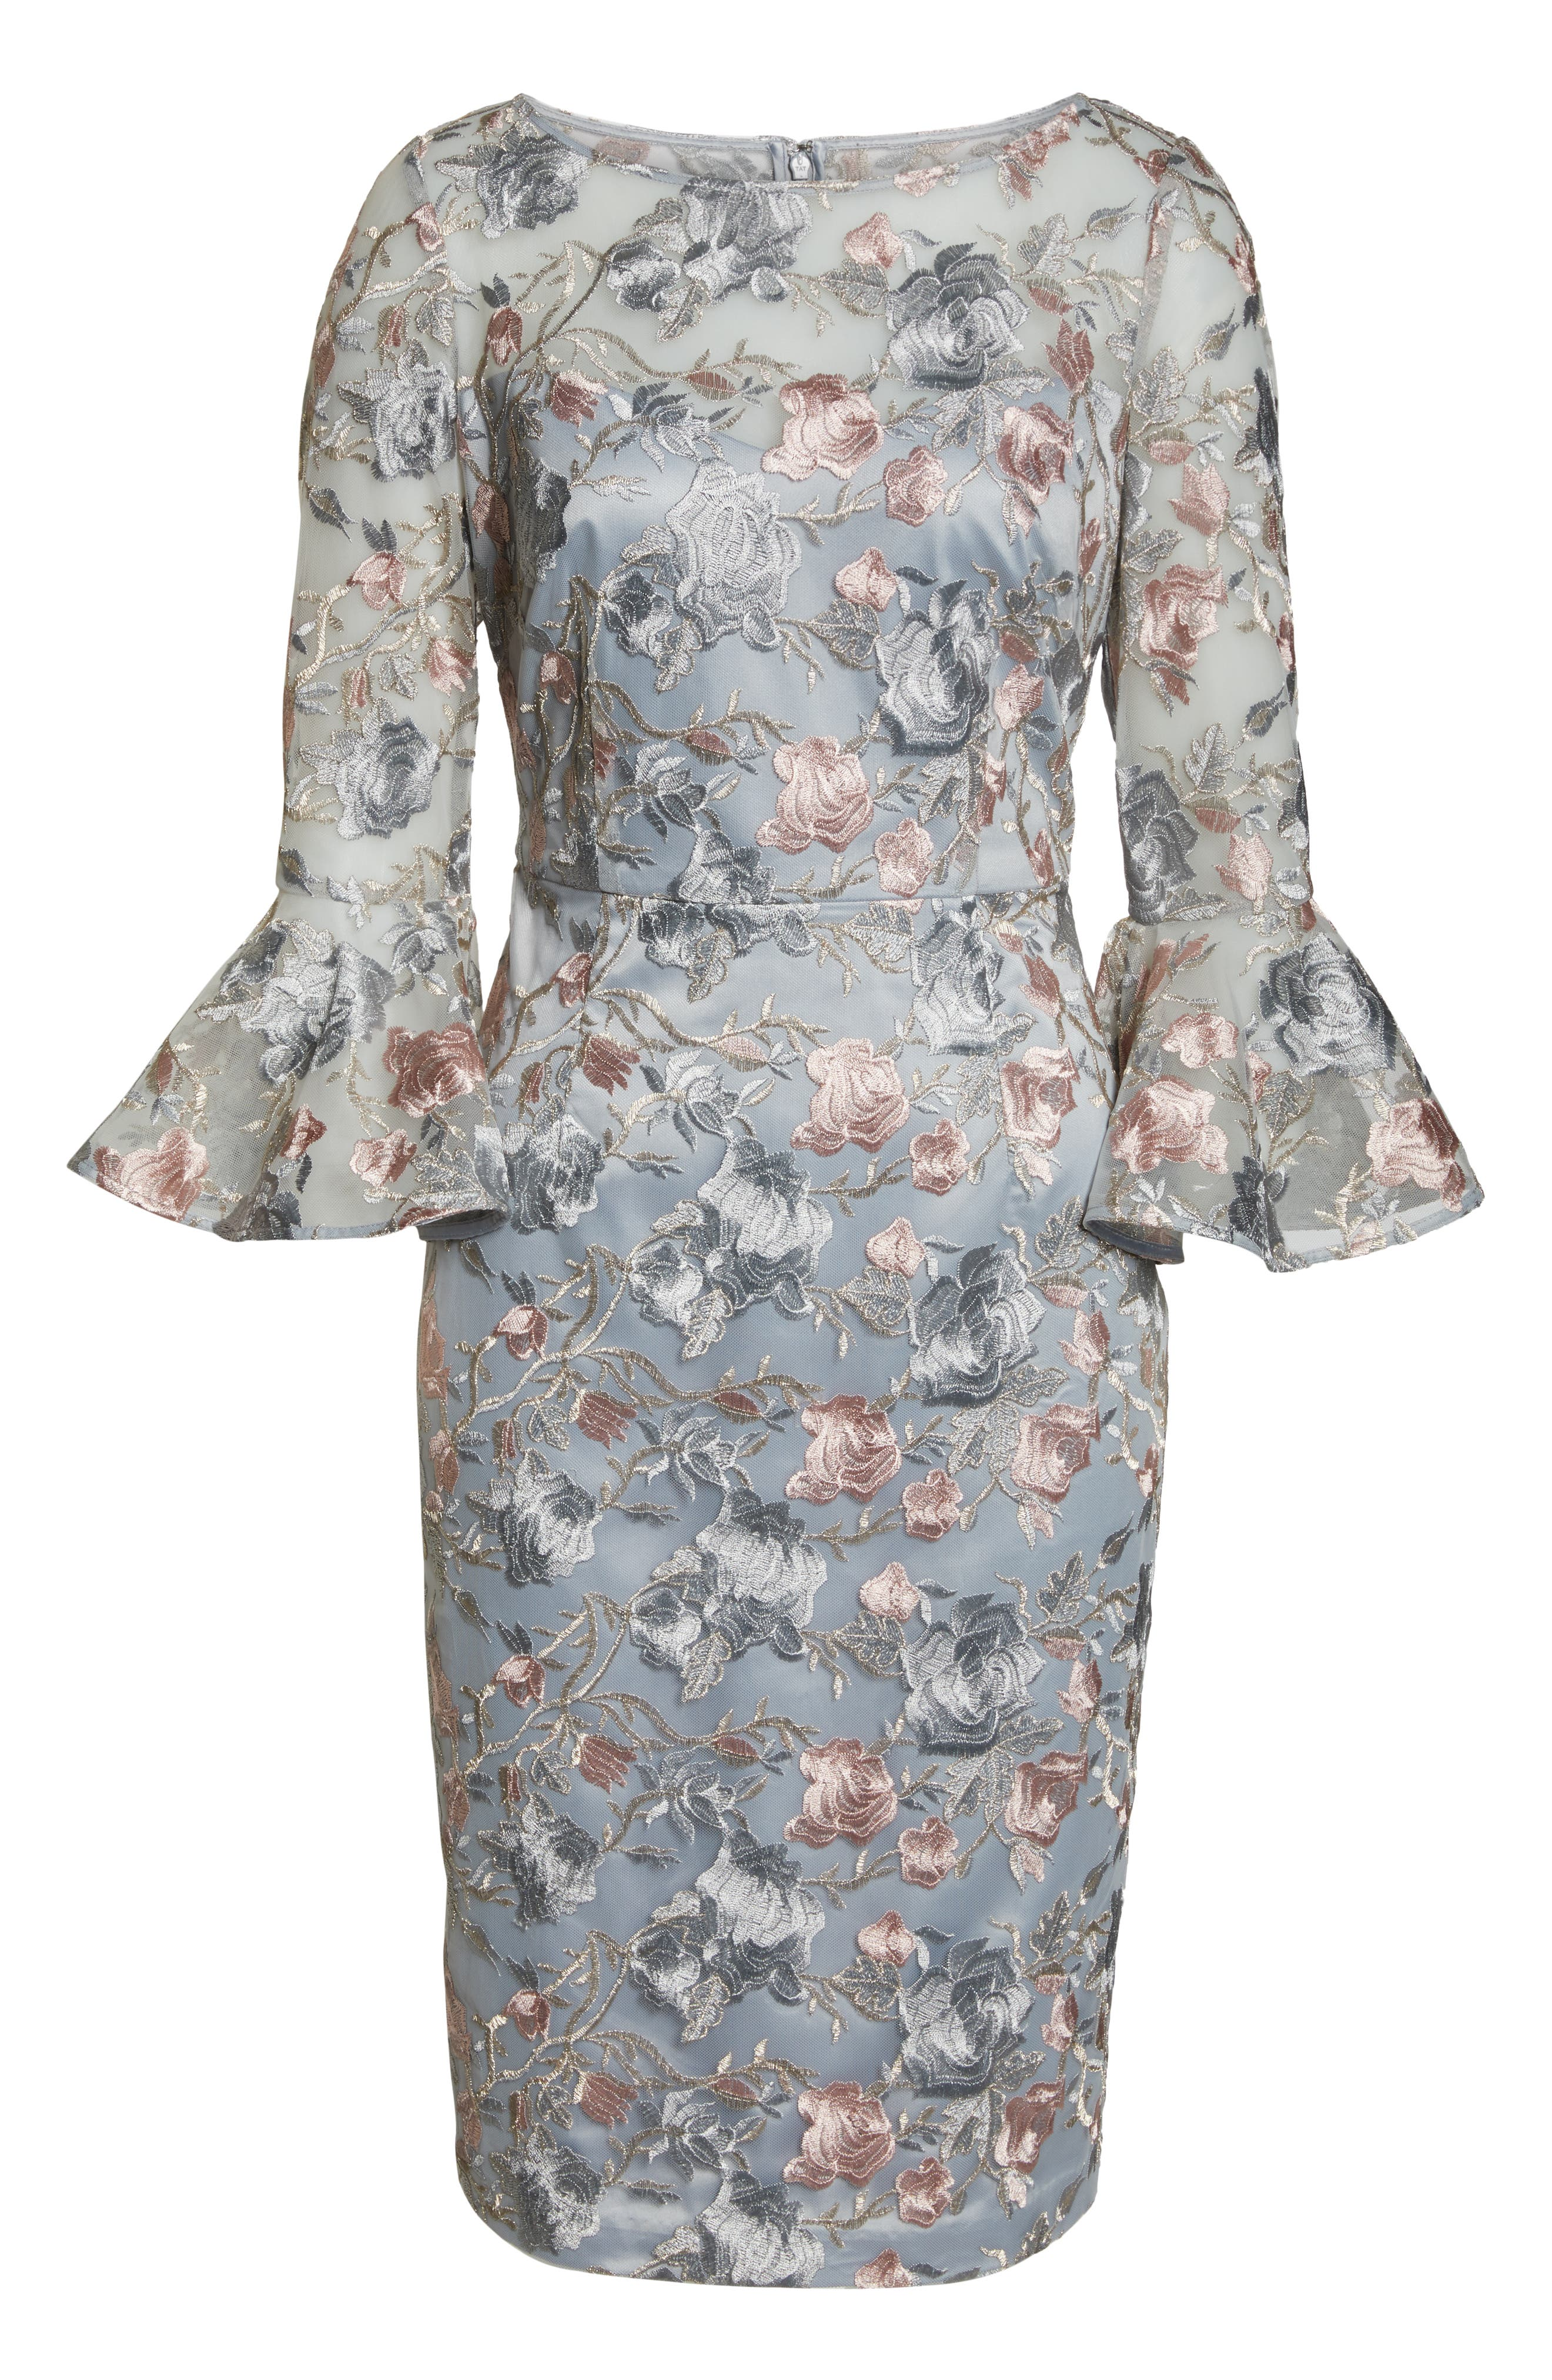 ELIZA J, Floral Embroidered Sheath Dress, Alternate thumbnail 7, color, 421